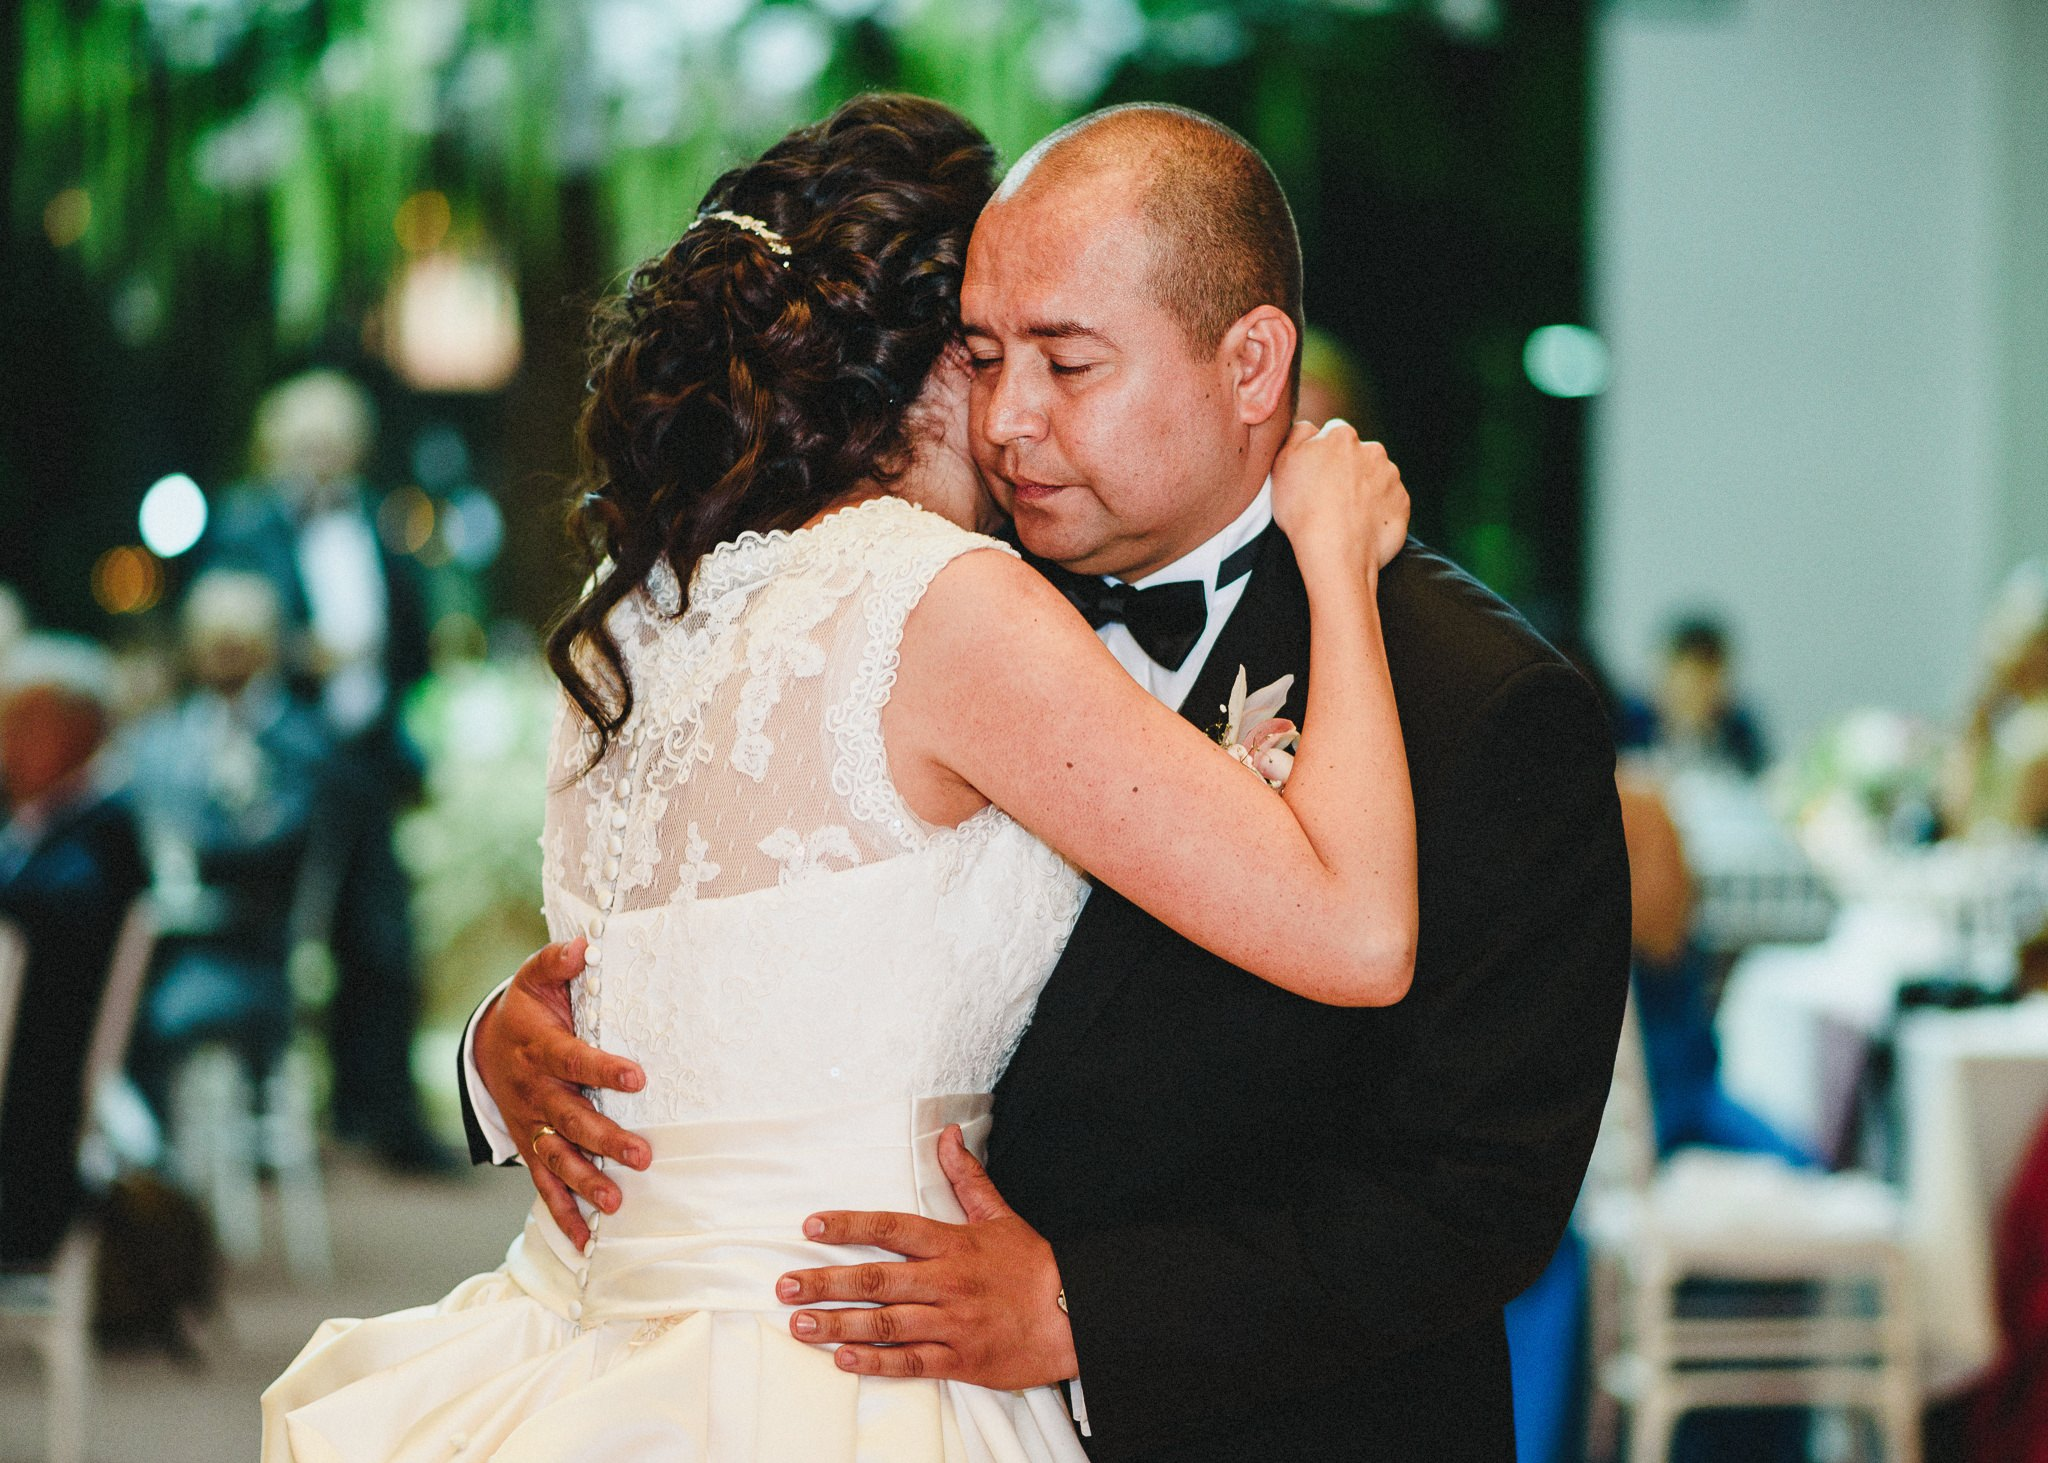 Wedding-Boda-Tulancingo-Hidalgo-Salon-Essenzia-Luis-Houdin-49-film